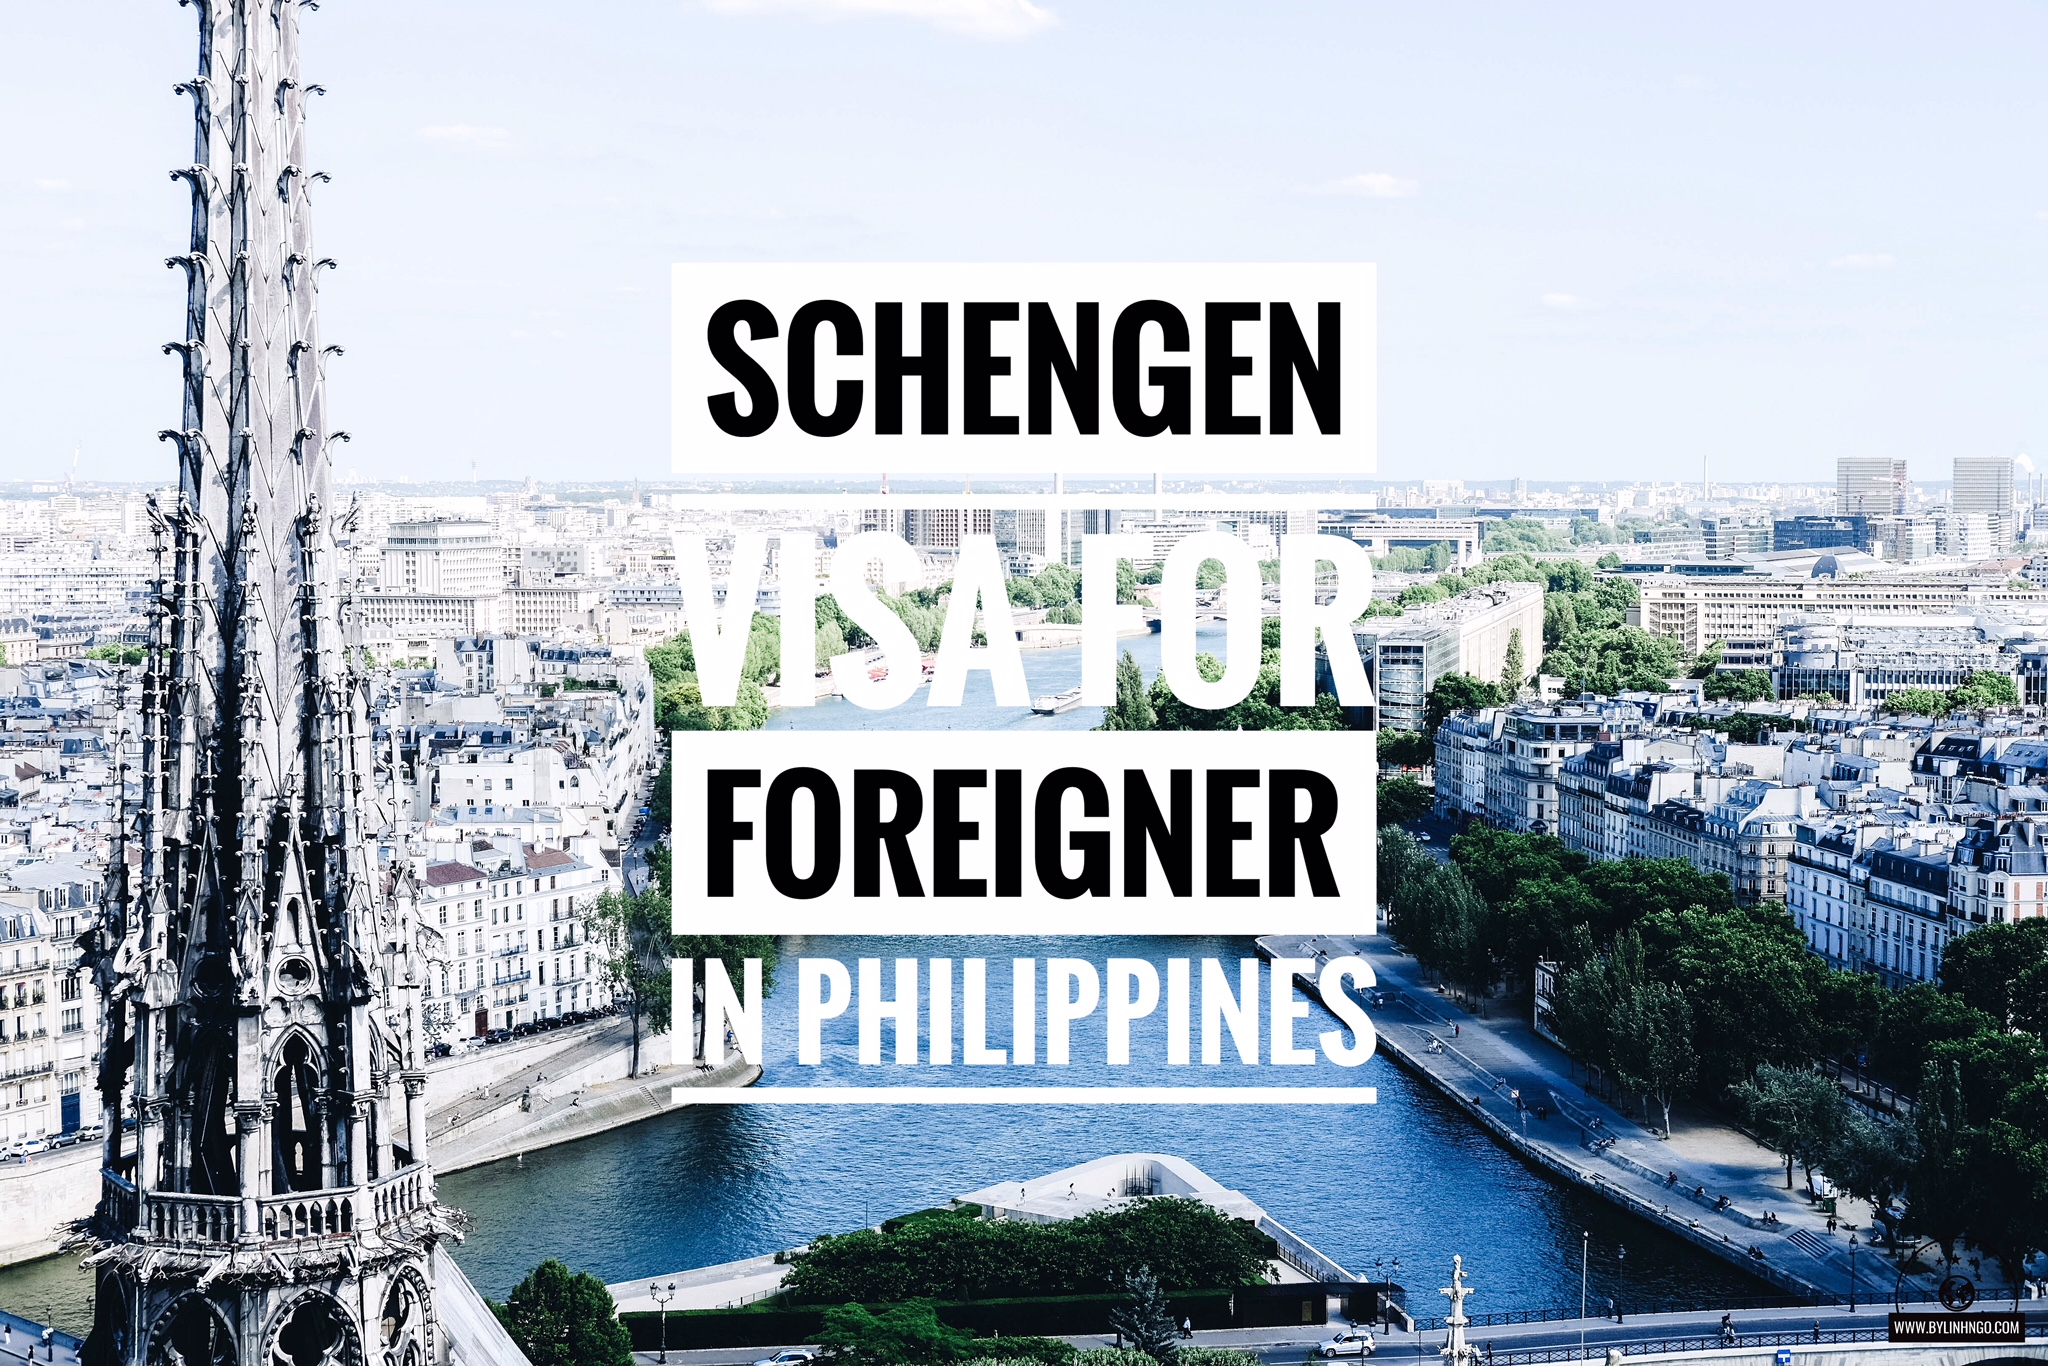 How to apply for a foreigner